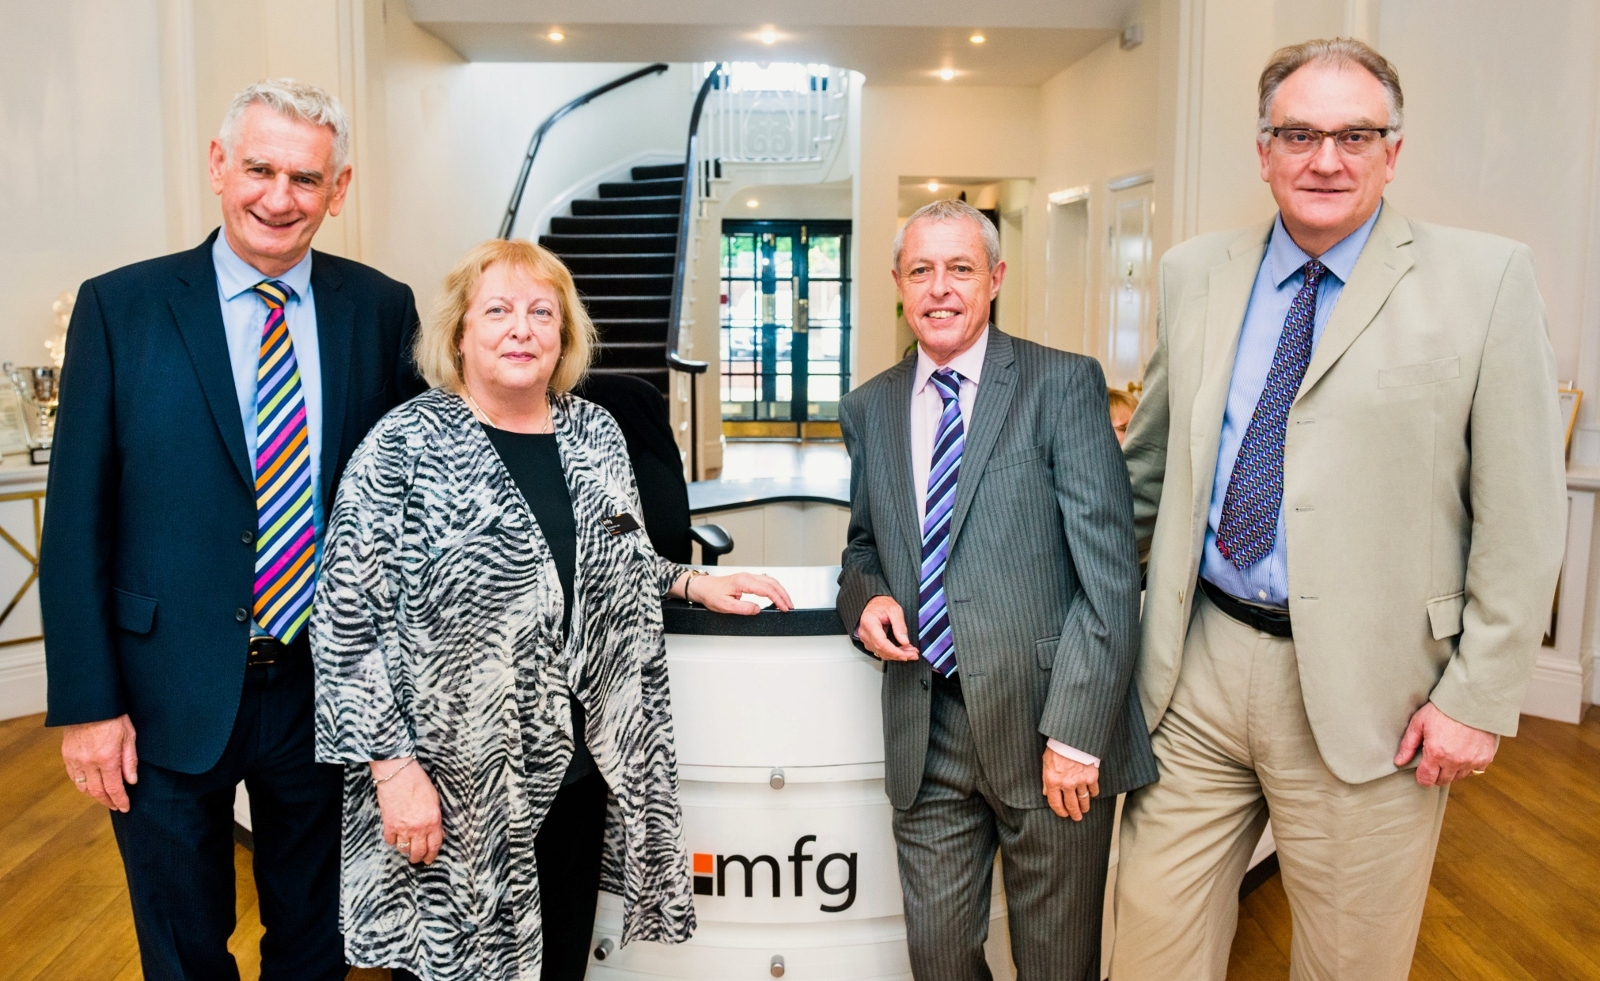 (L-R) Brian Flint (Pearson Rowe), Suzanne Lee (mfg Solicitors), Mike Deeley (Pearson Rowe) & Maynard Burton (mfg Solicitors)